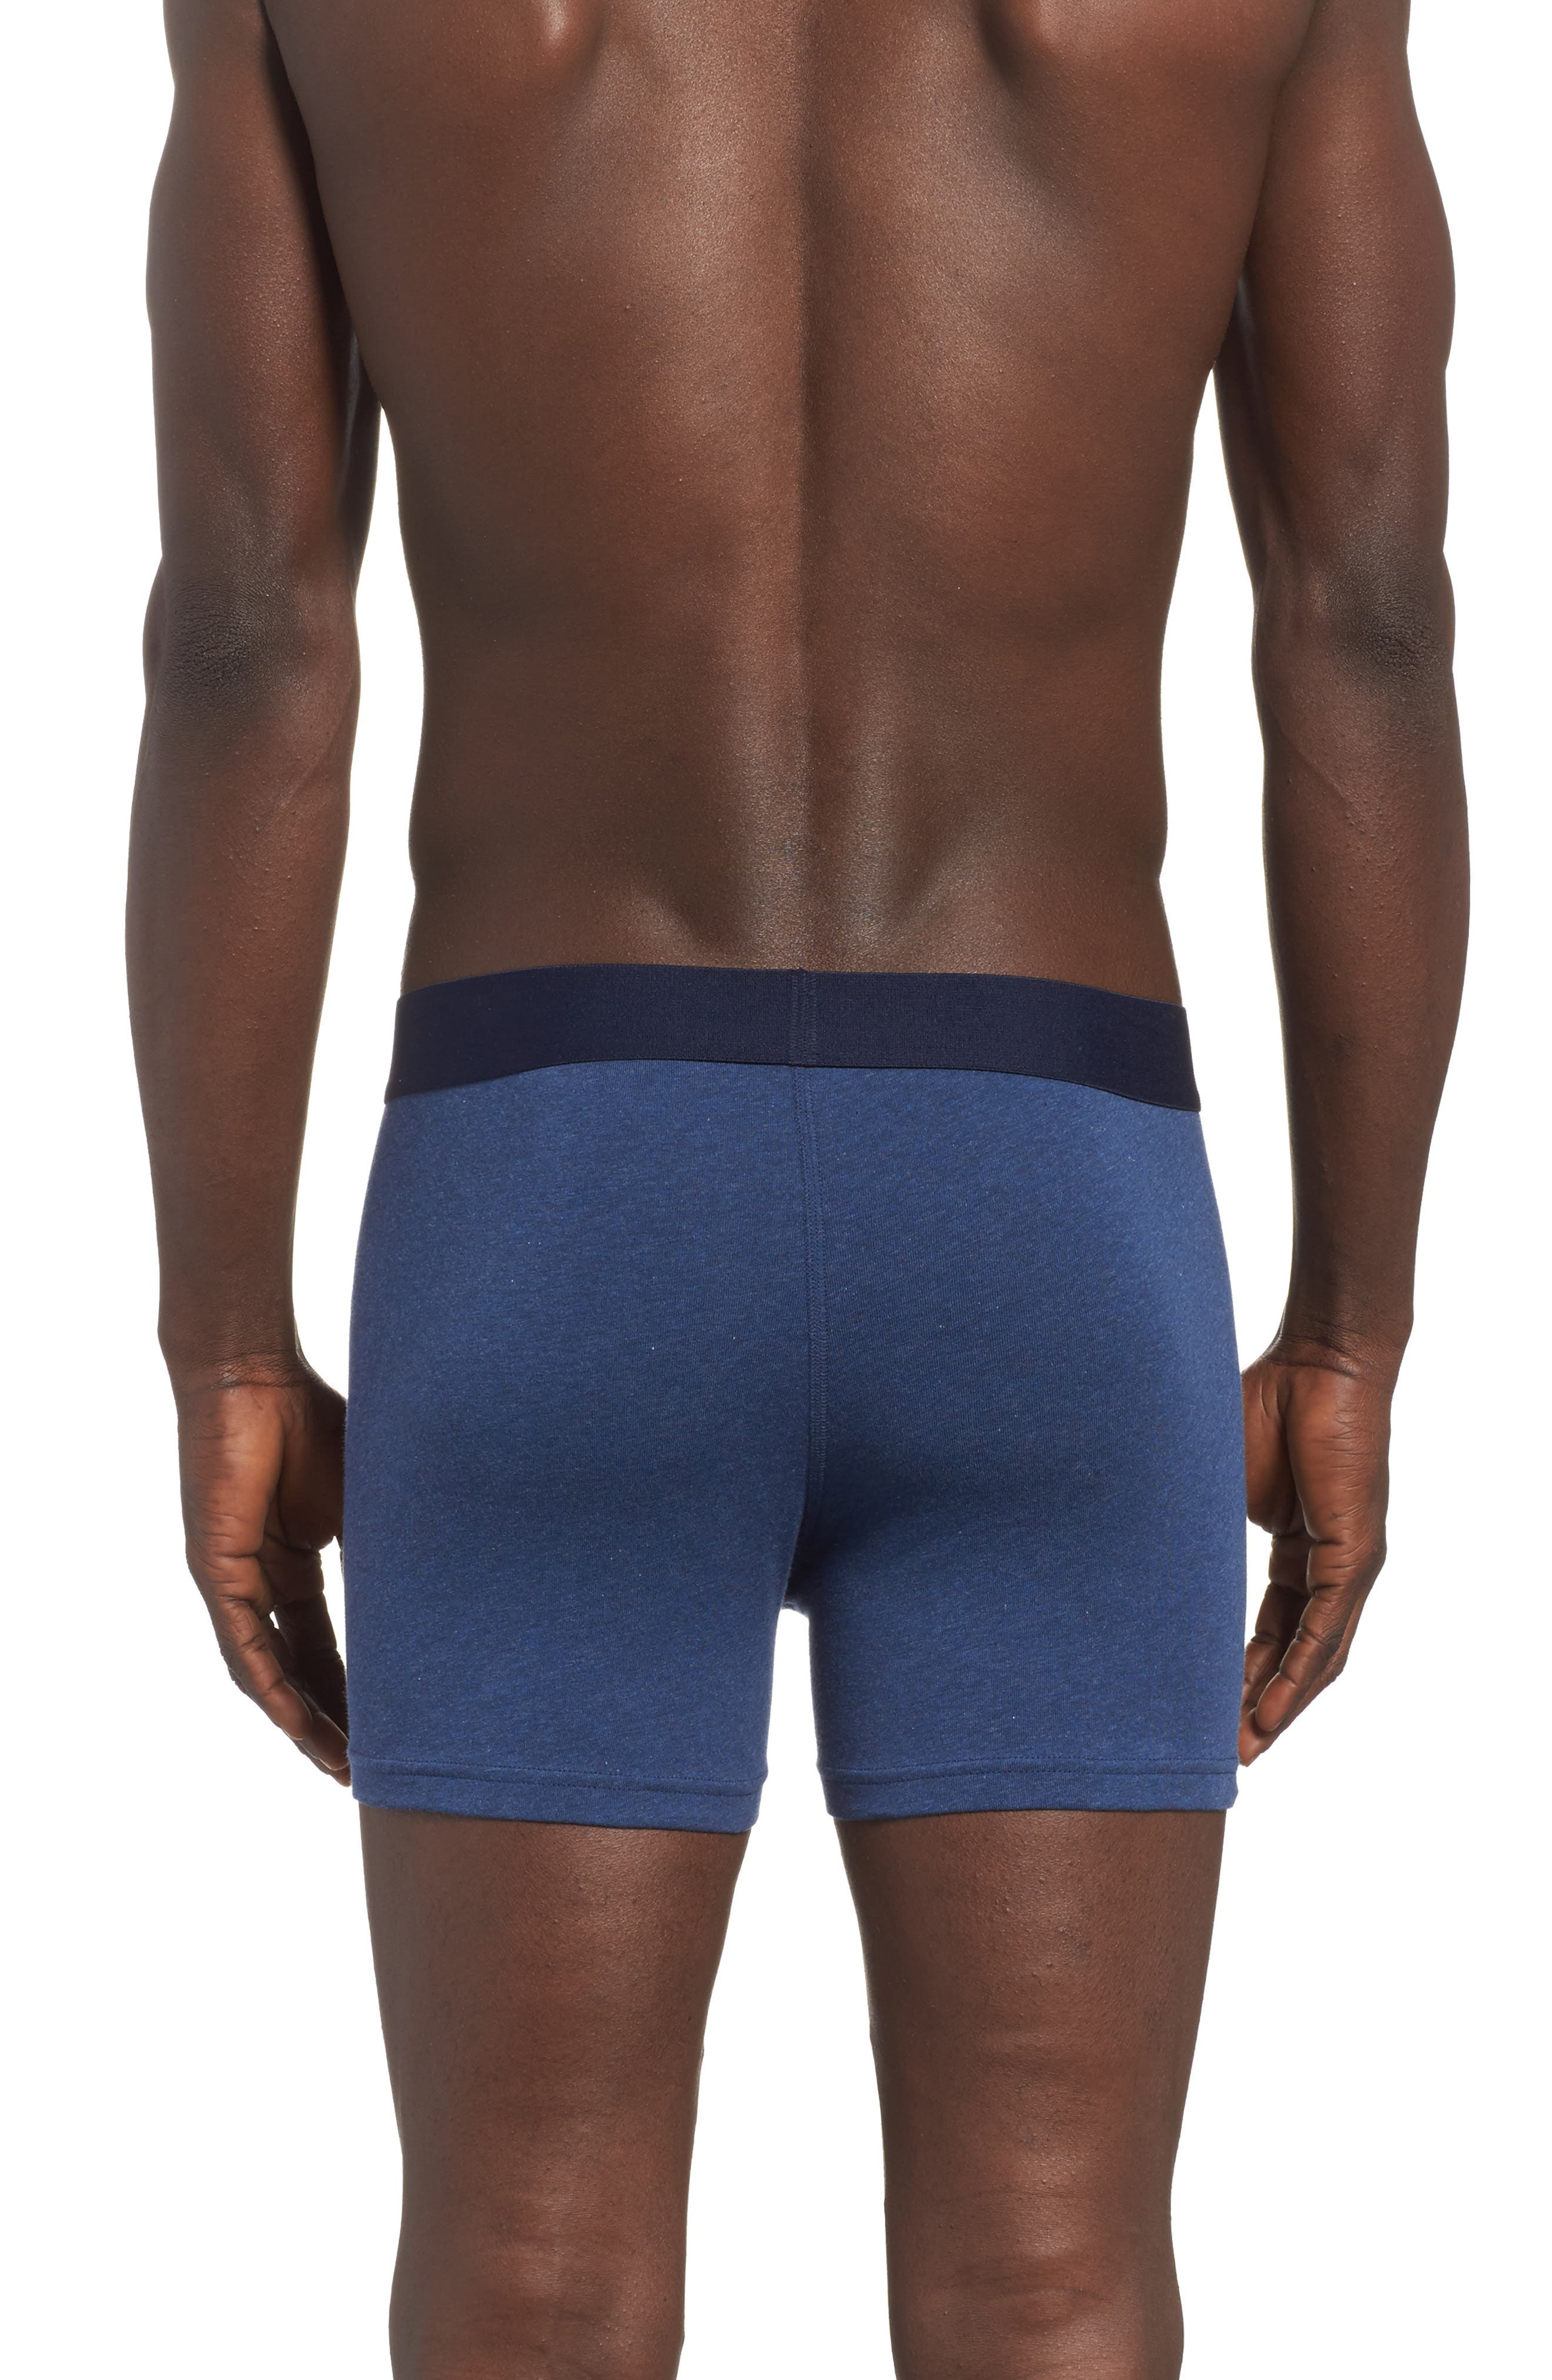 2-Pack Boxer Briefs,                             Alternate thumbnail 3, color,                             Navy/ Navy Heather